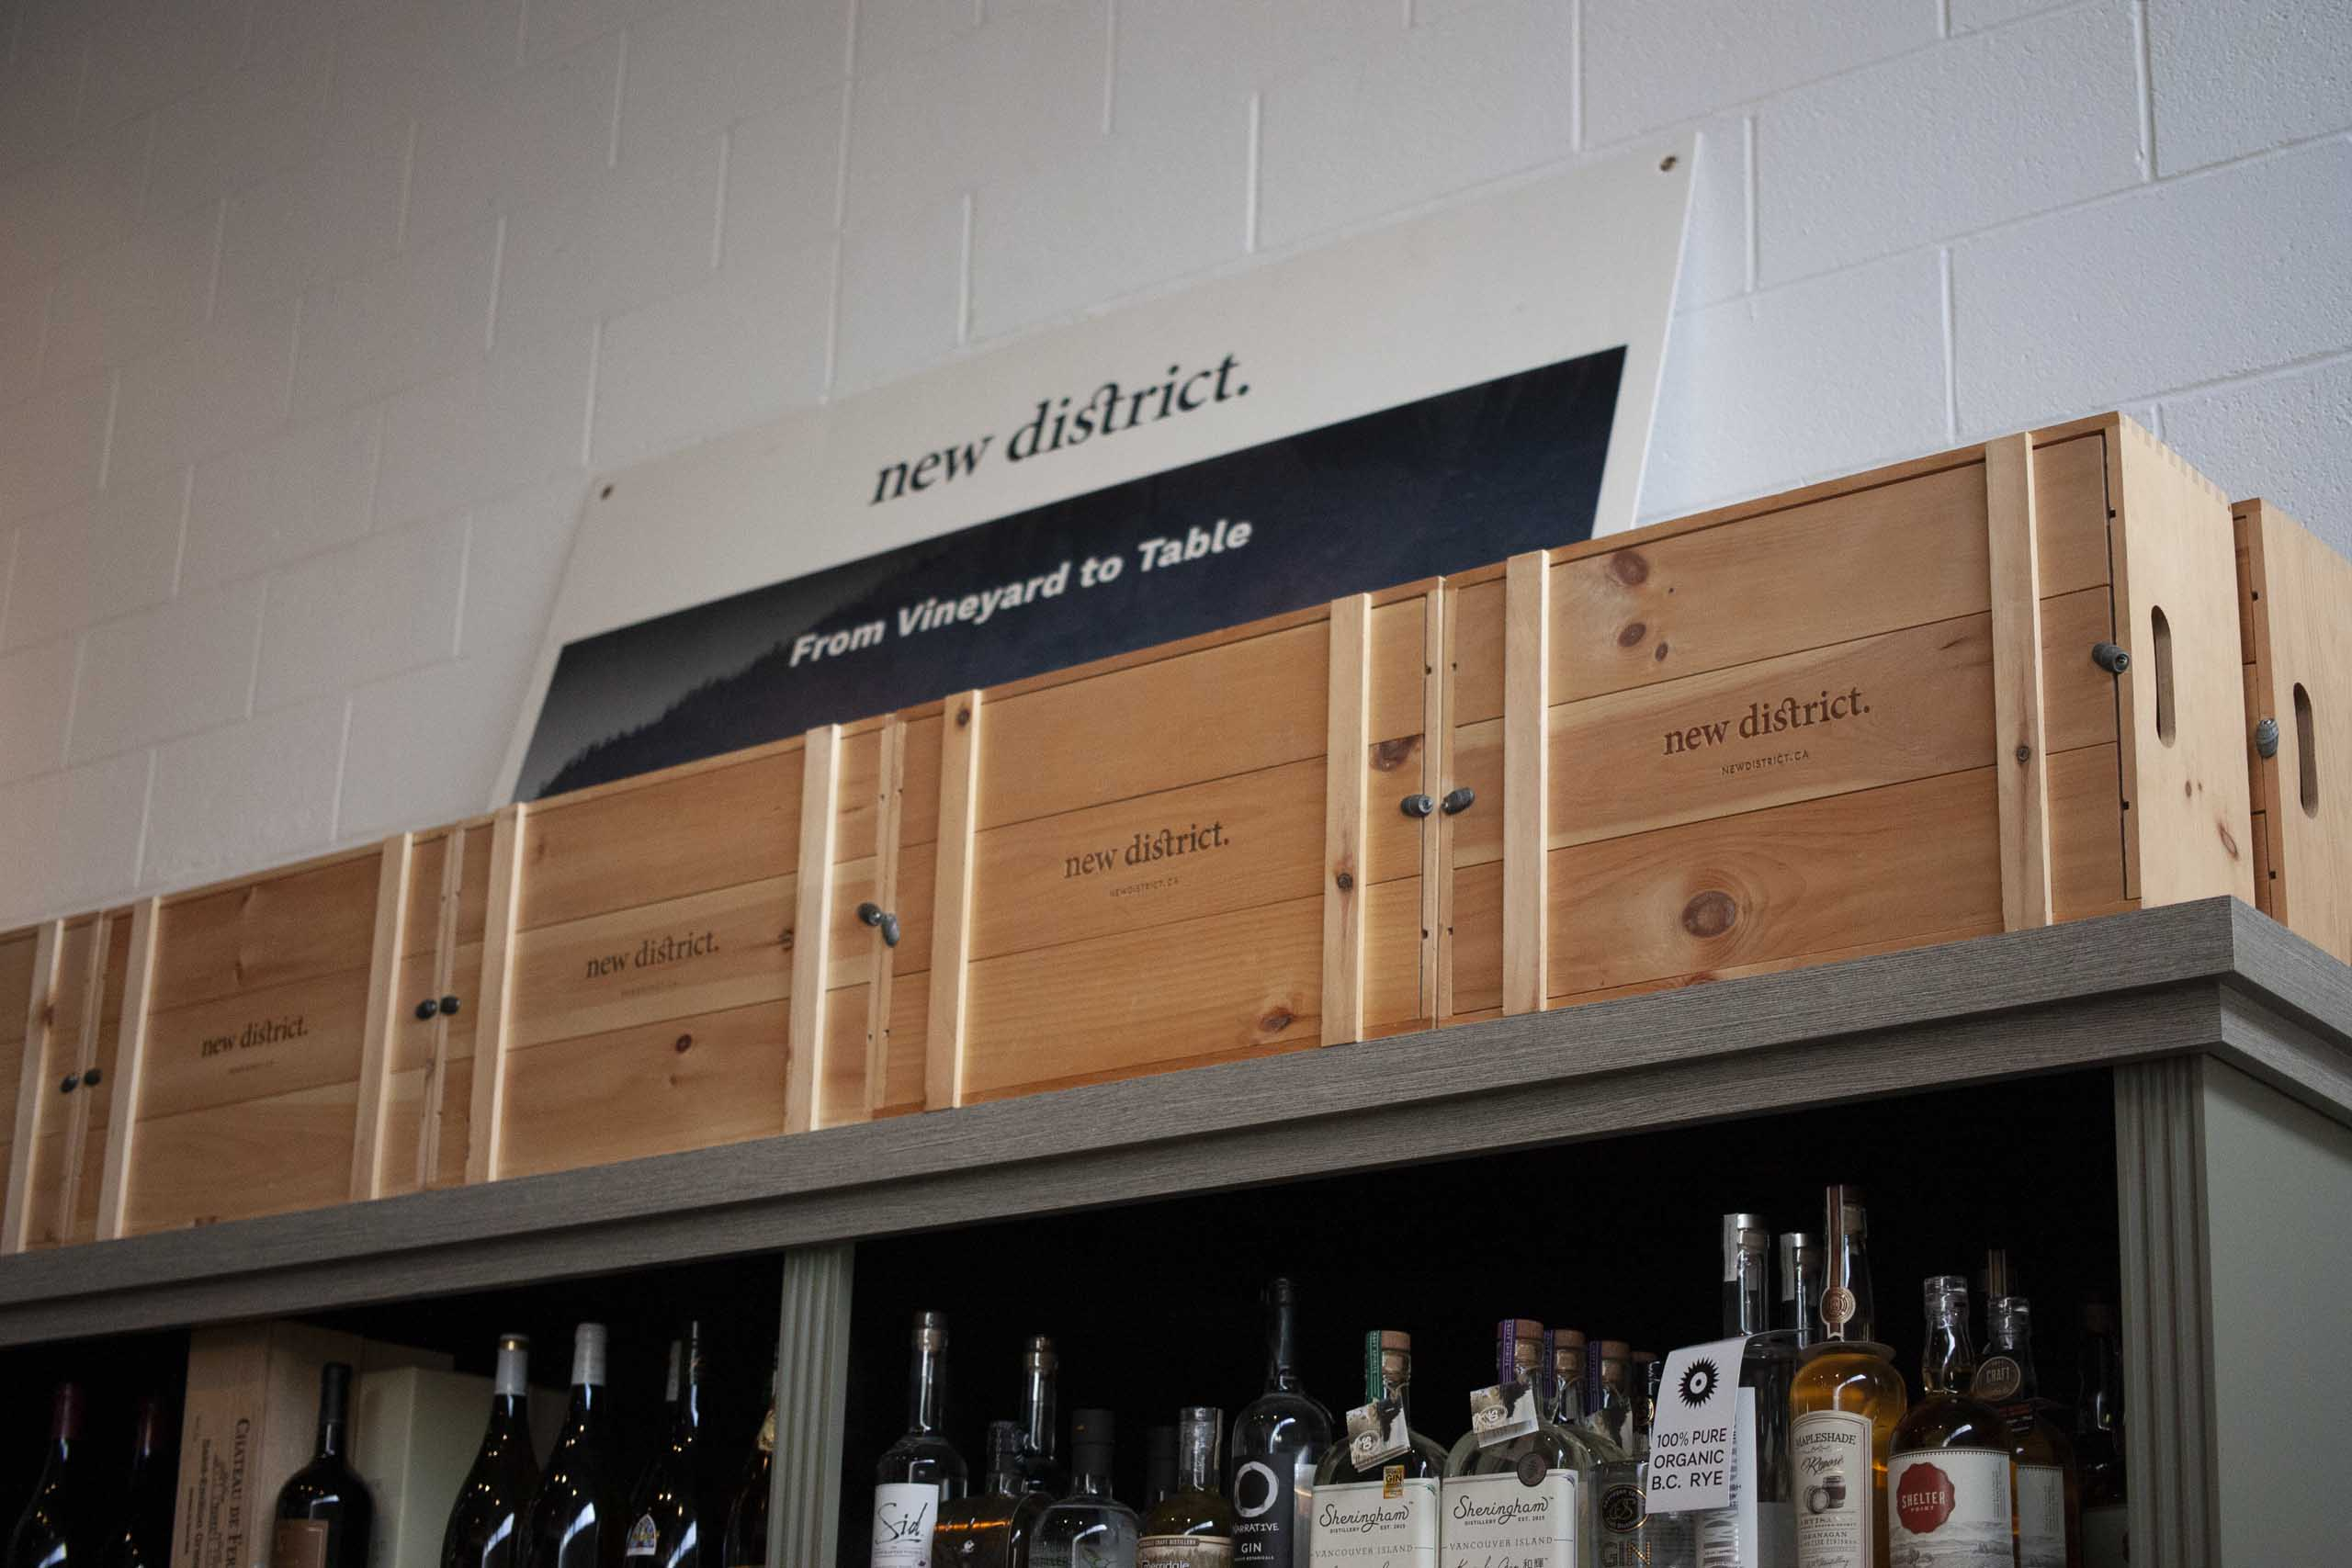 New District Packaging crates on top of stained wood shelving against a a white cinderblock wall — by Yagnyuk.